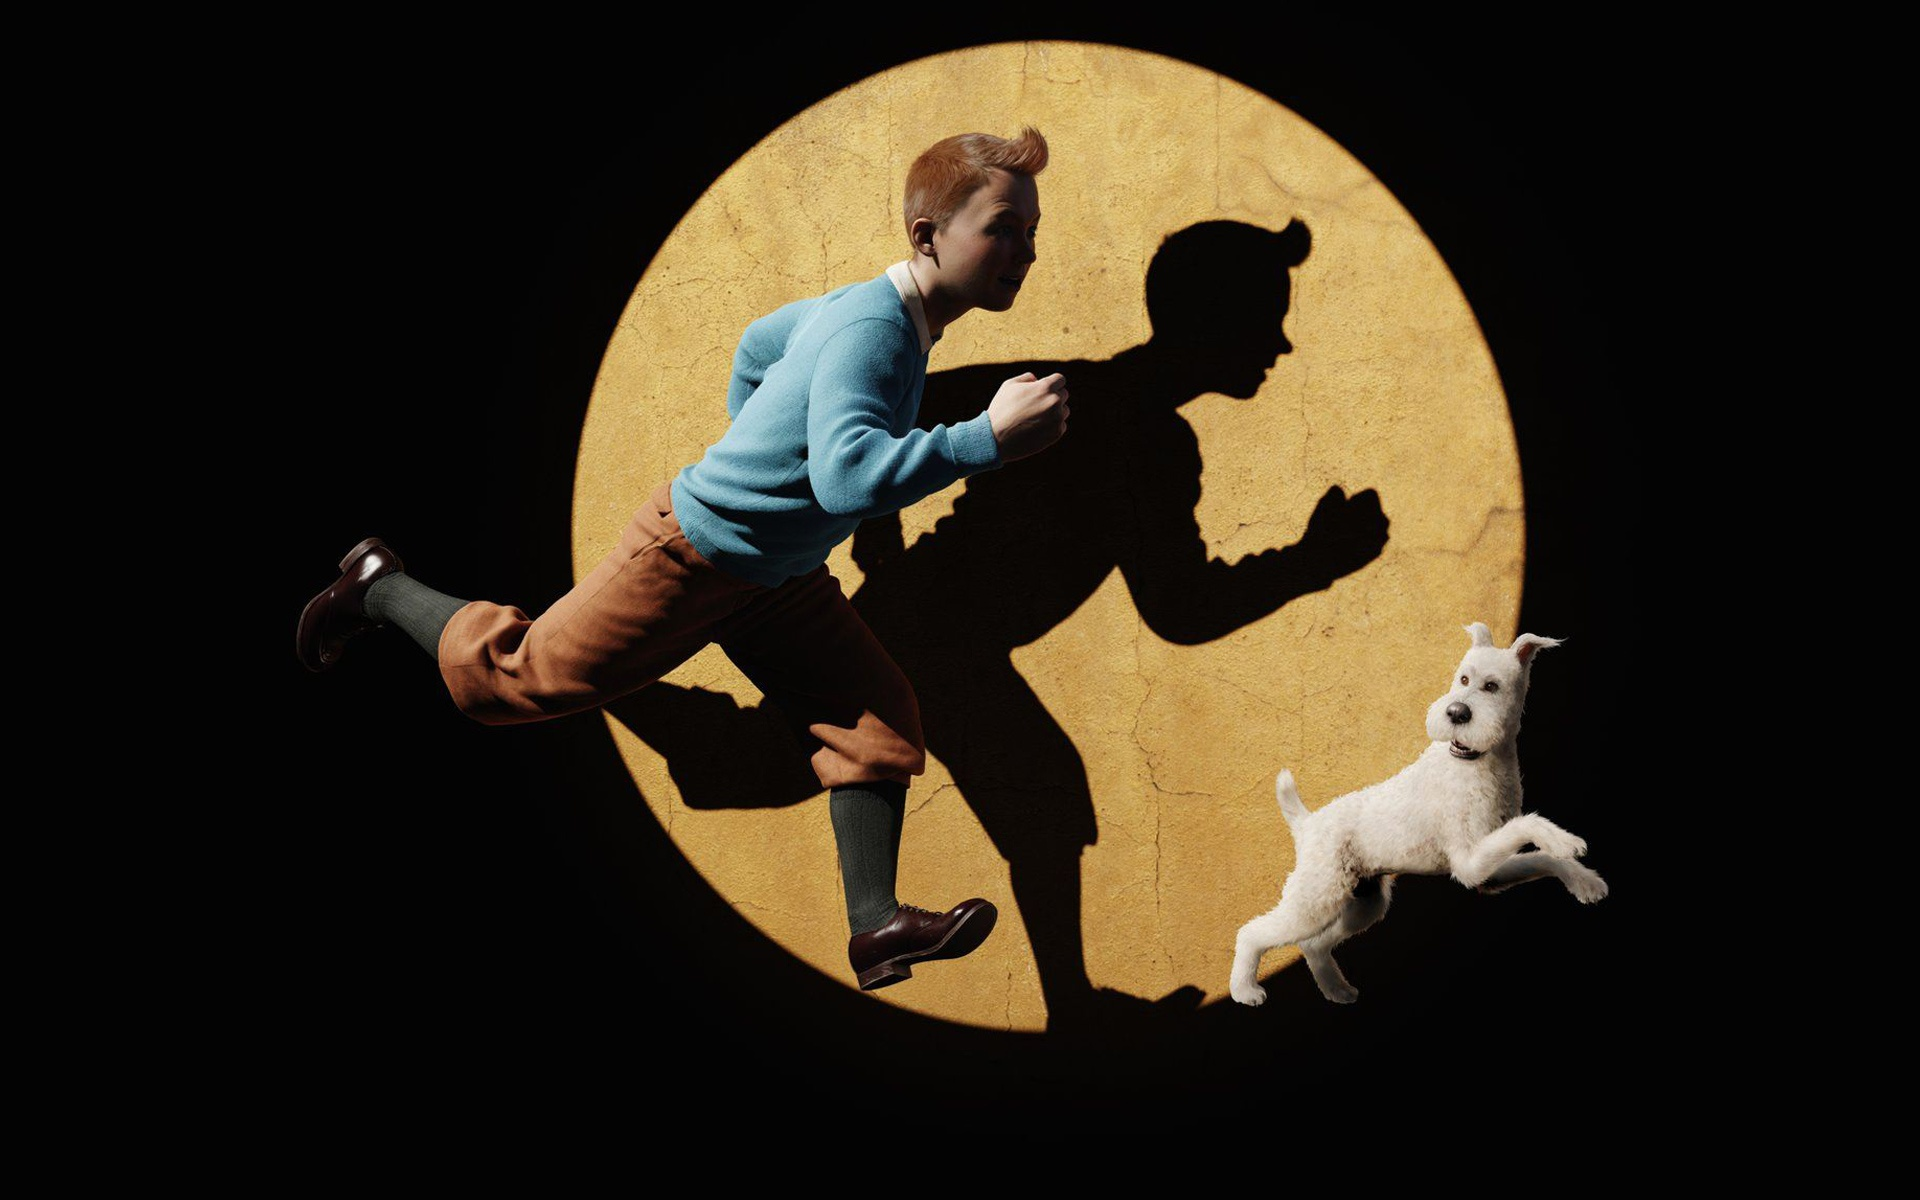 tintin and snowy in the adventures of tintin wallpapers in jpg